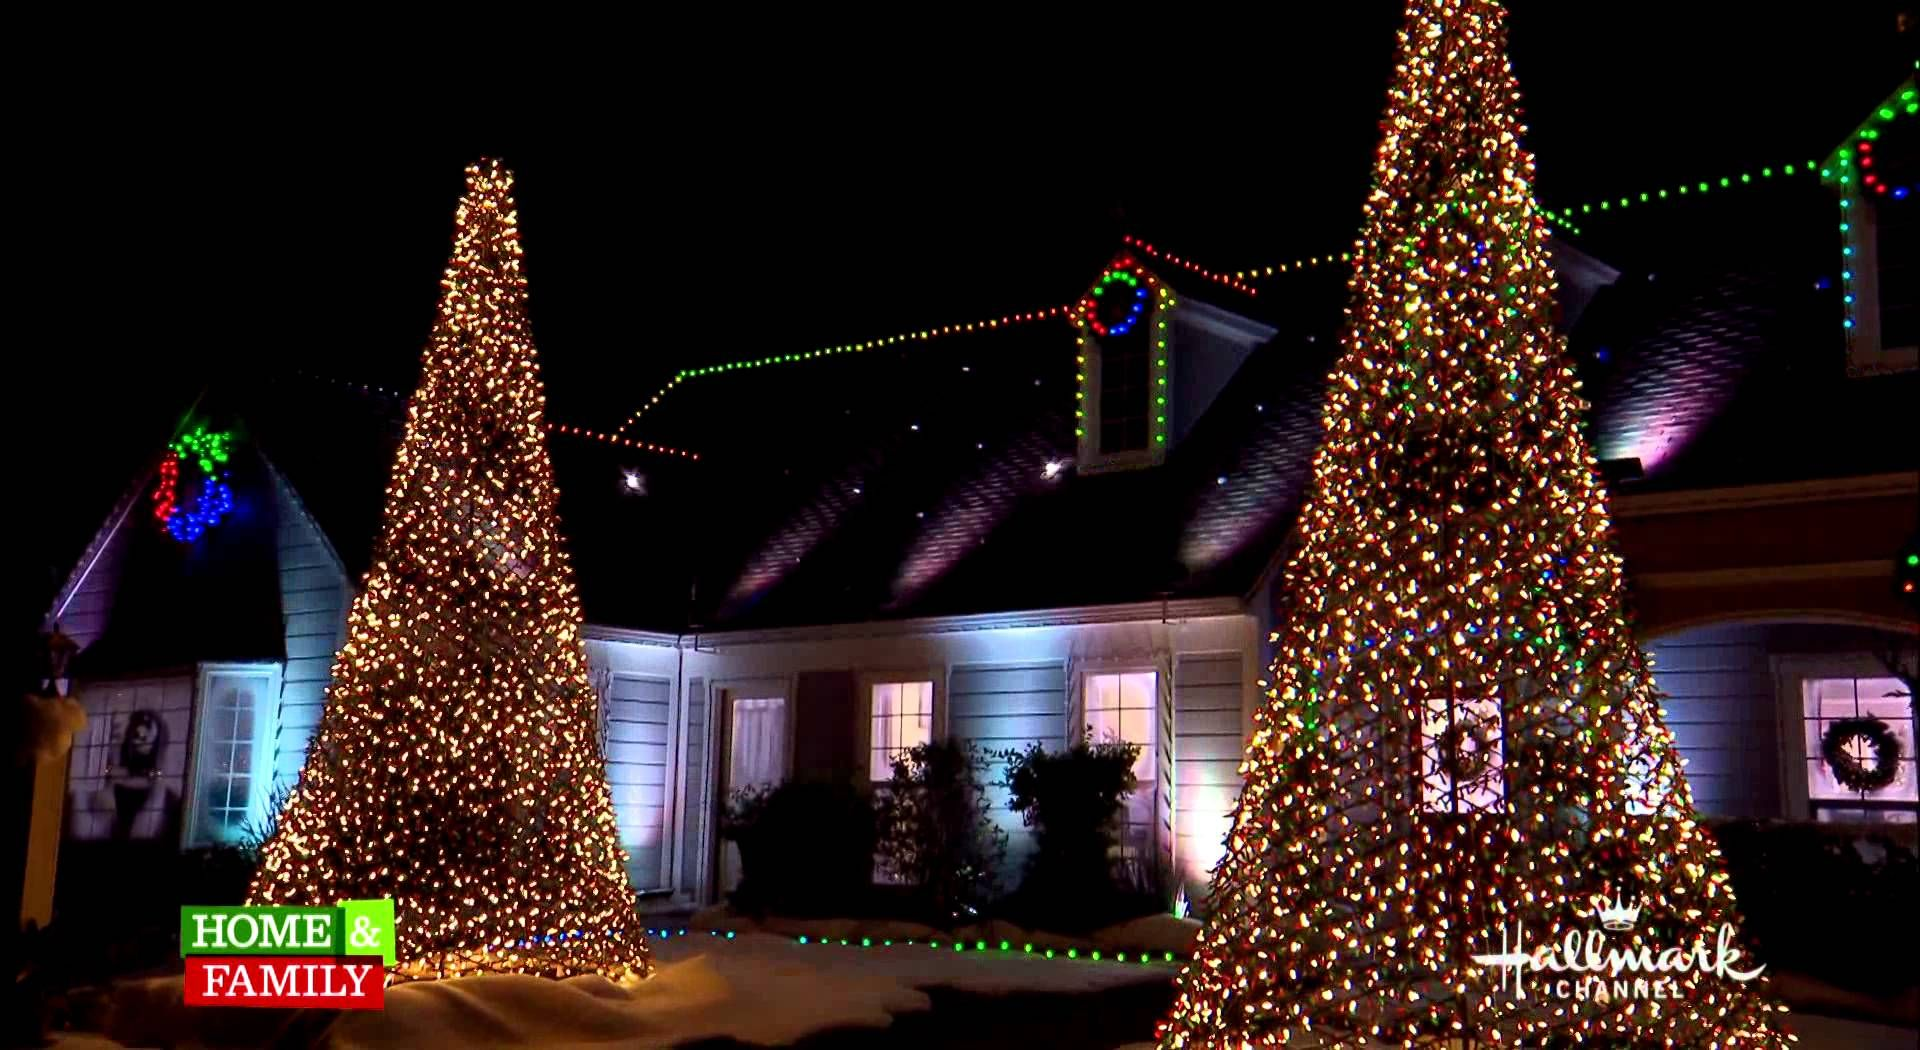 Trans-Siberian Orchestra Light Show | Home & Family DIY Crafts ...